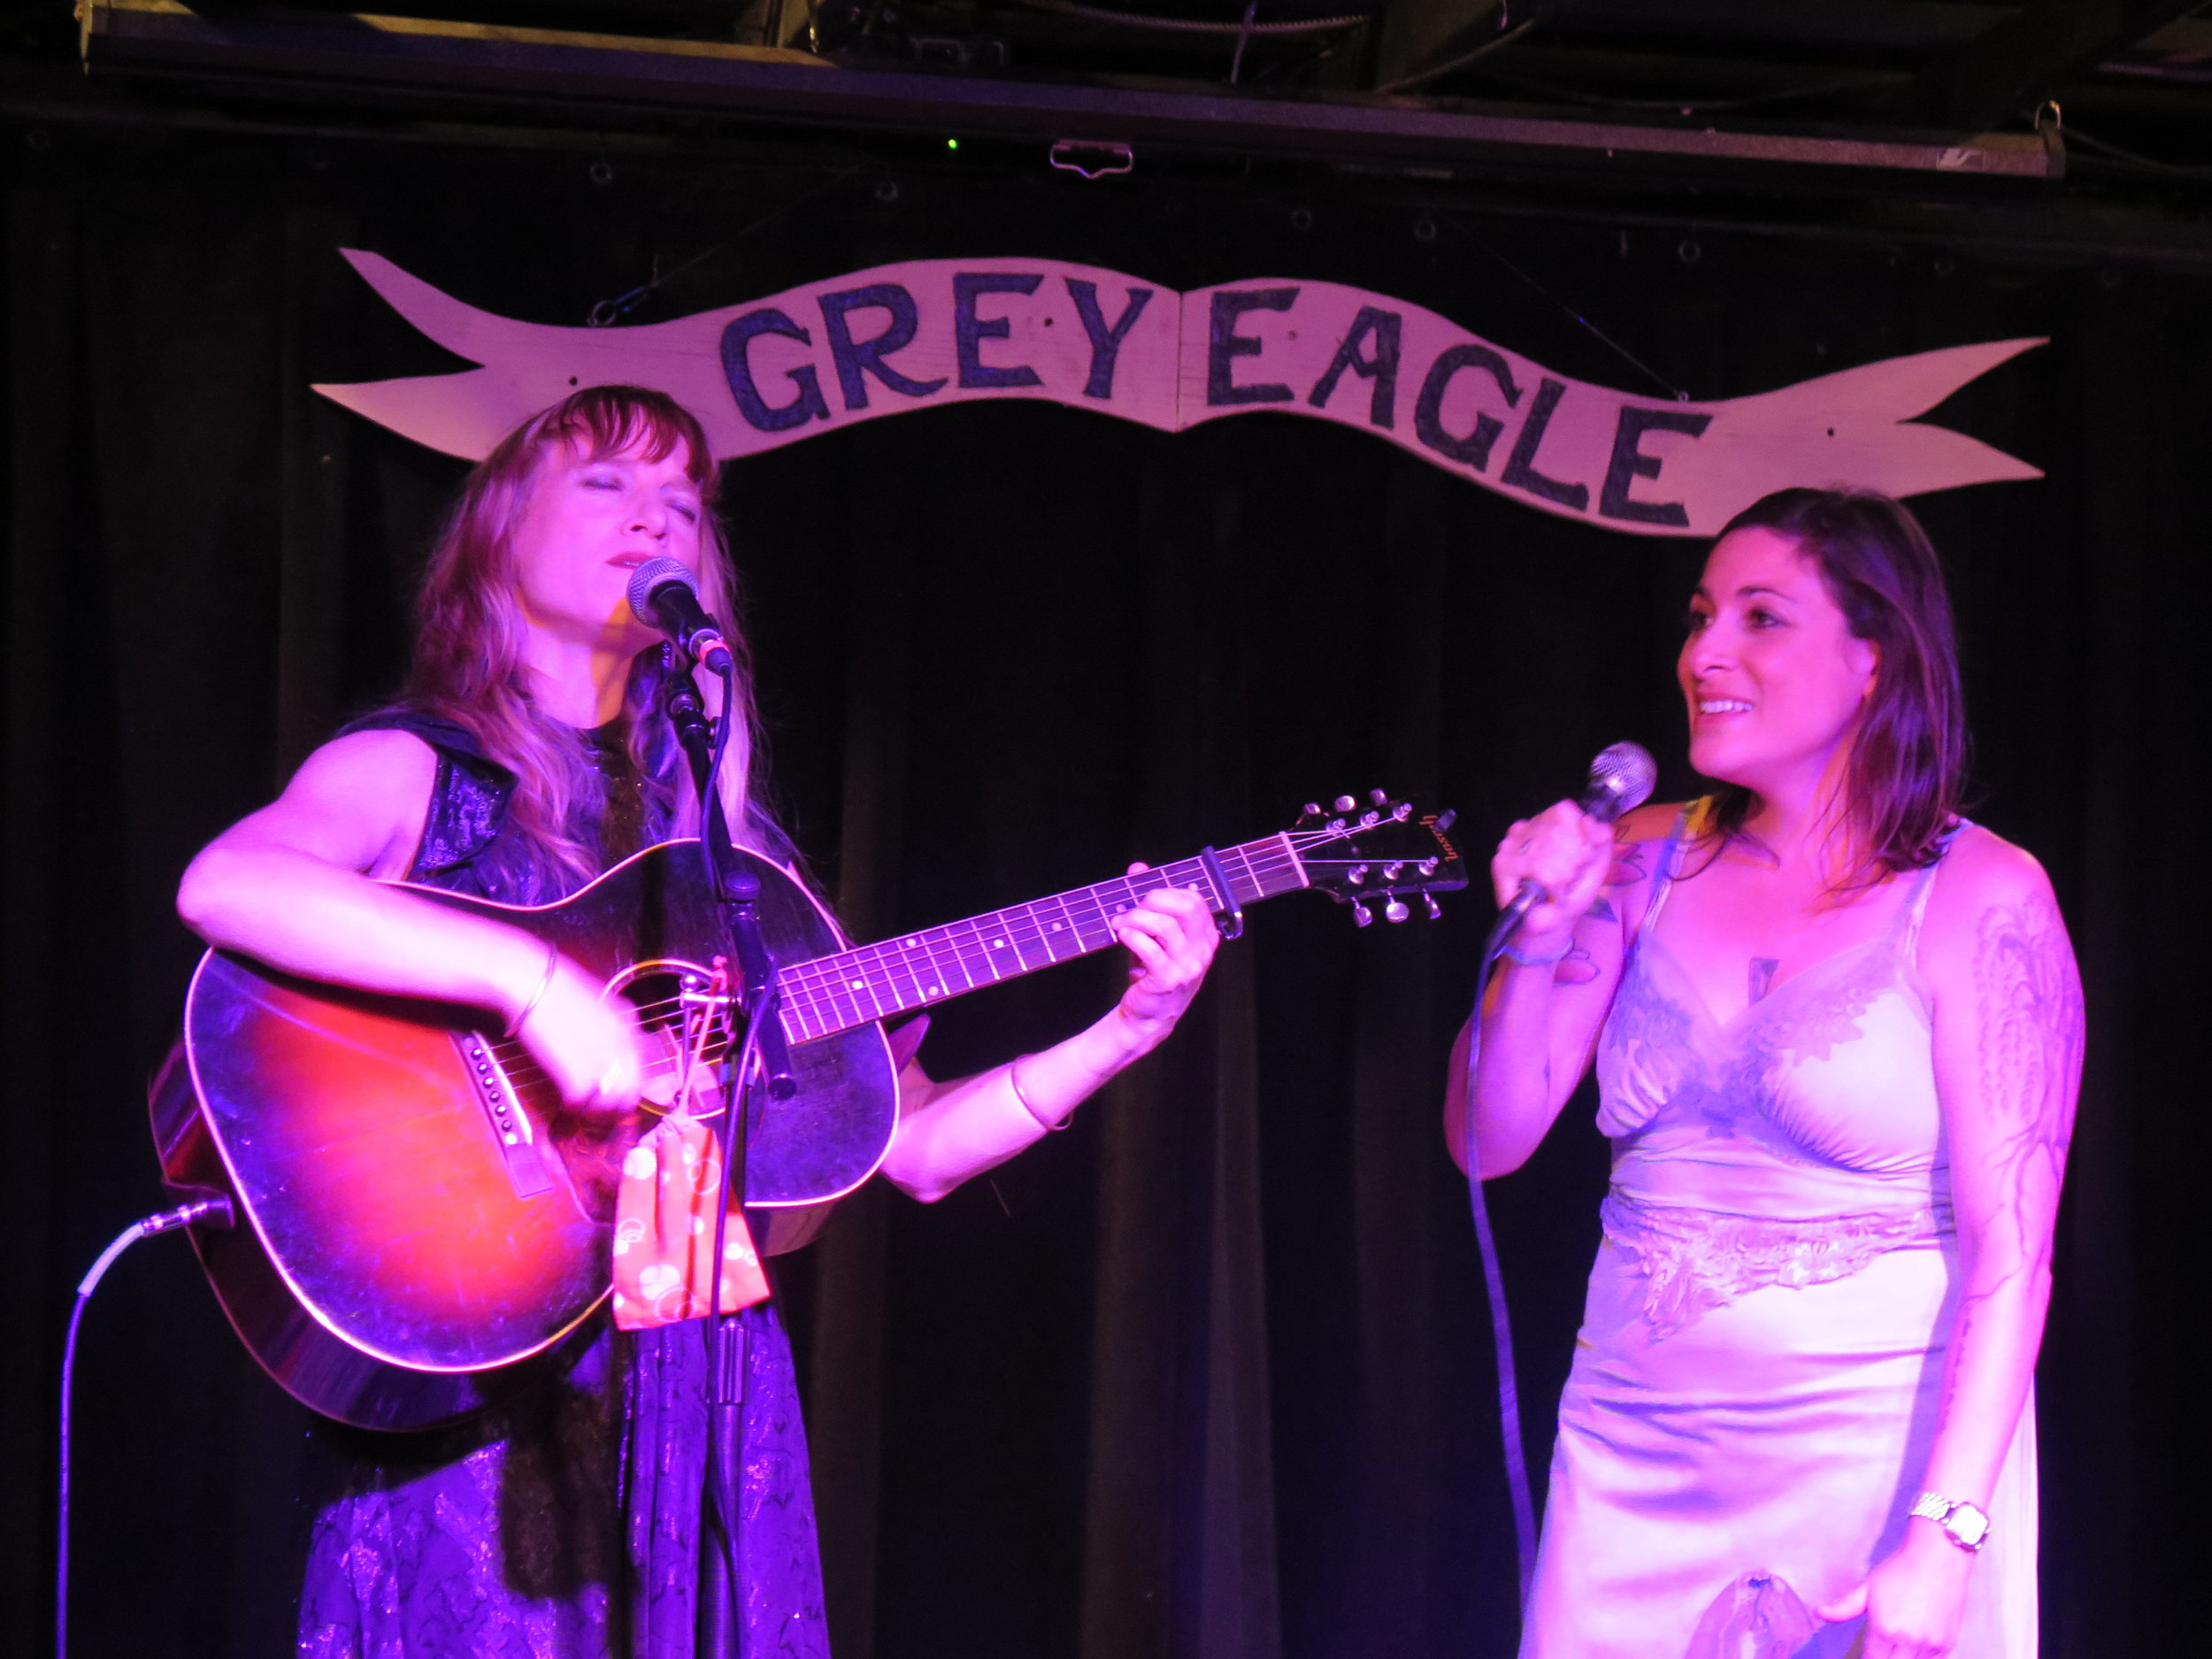 Anya Hinkle of Tellico and Jane Kramer performing in Asheville. Jane sang with Anya on her 2016 solo release Forsaken Wind.